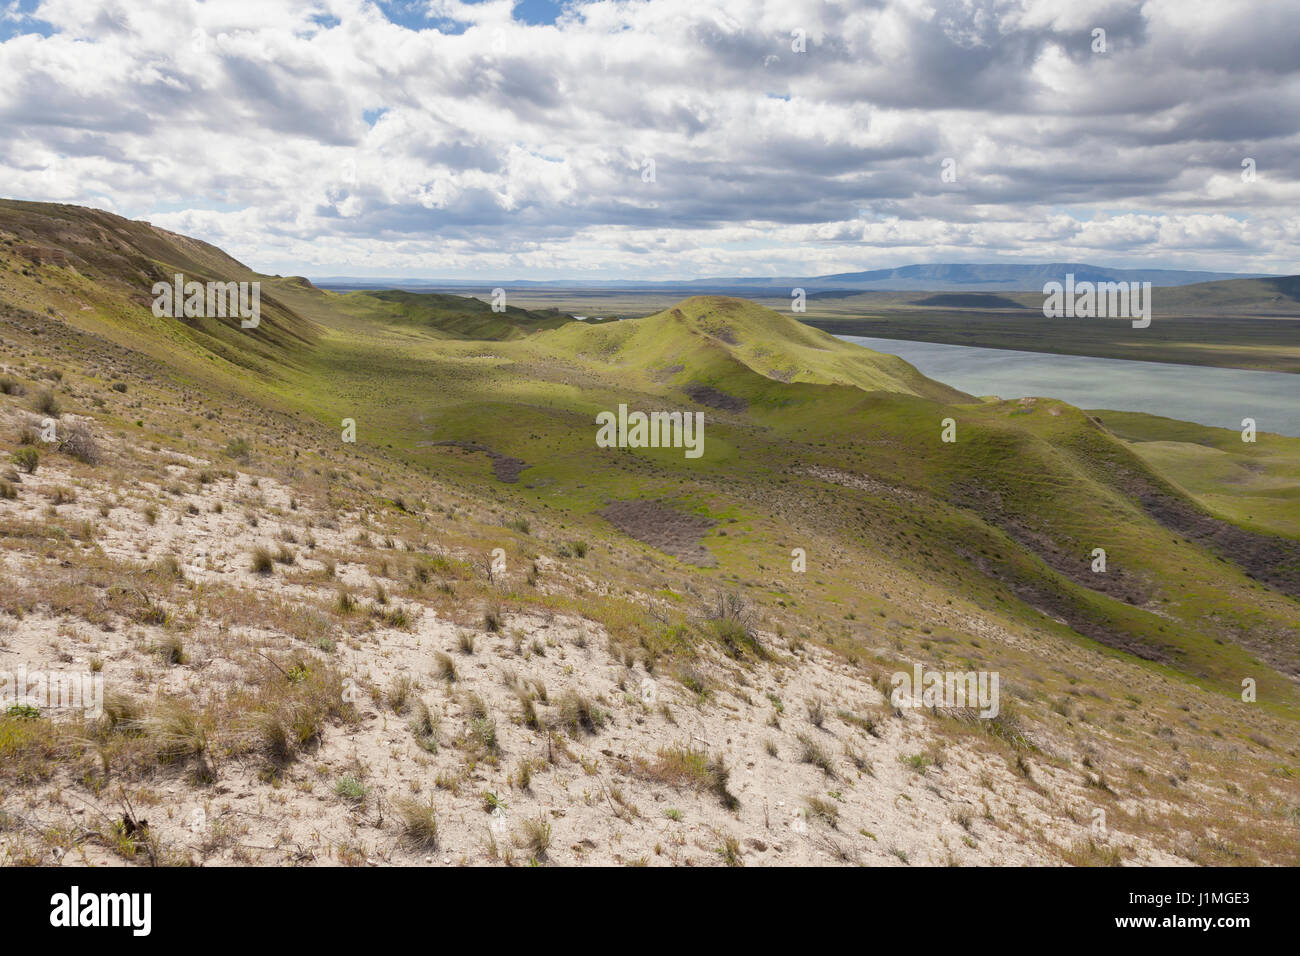 Franklin County, Washington: The White Bluffs along the Columbia River in Hanford Reach National Monument. Across - Stock Image